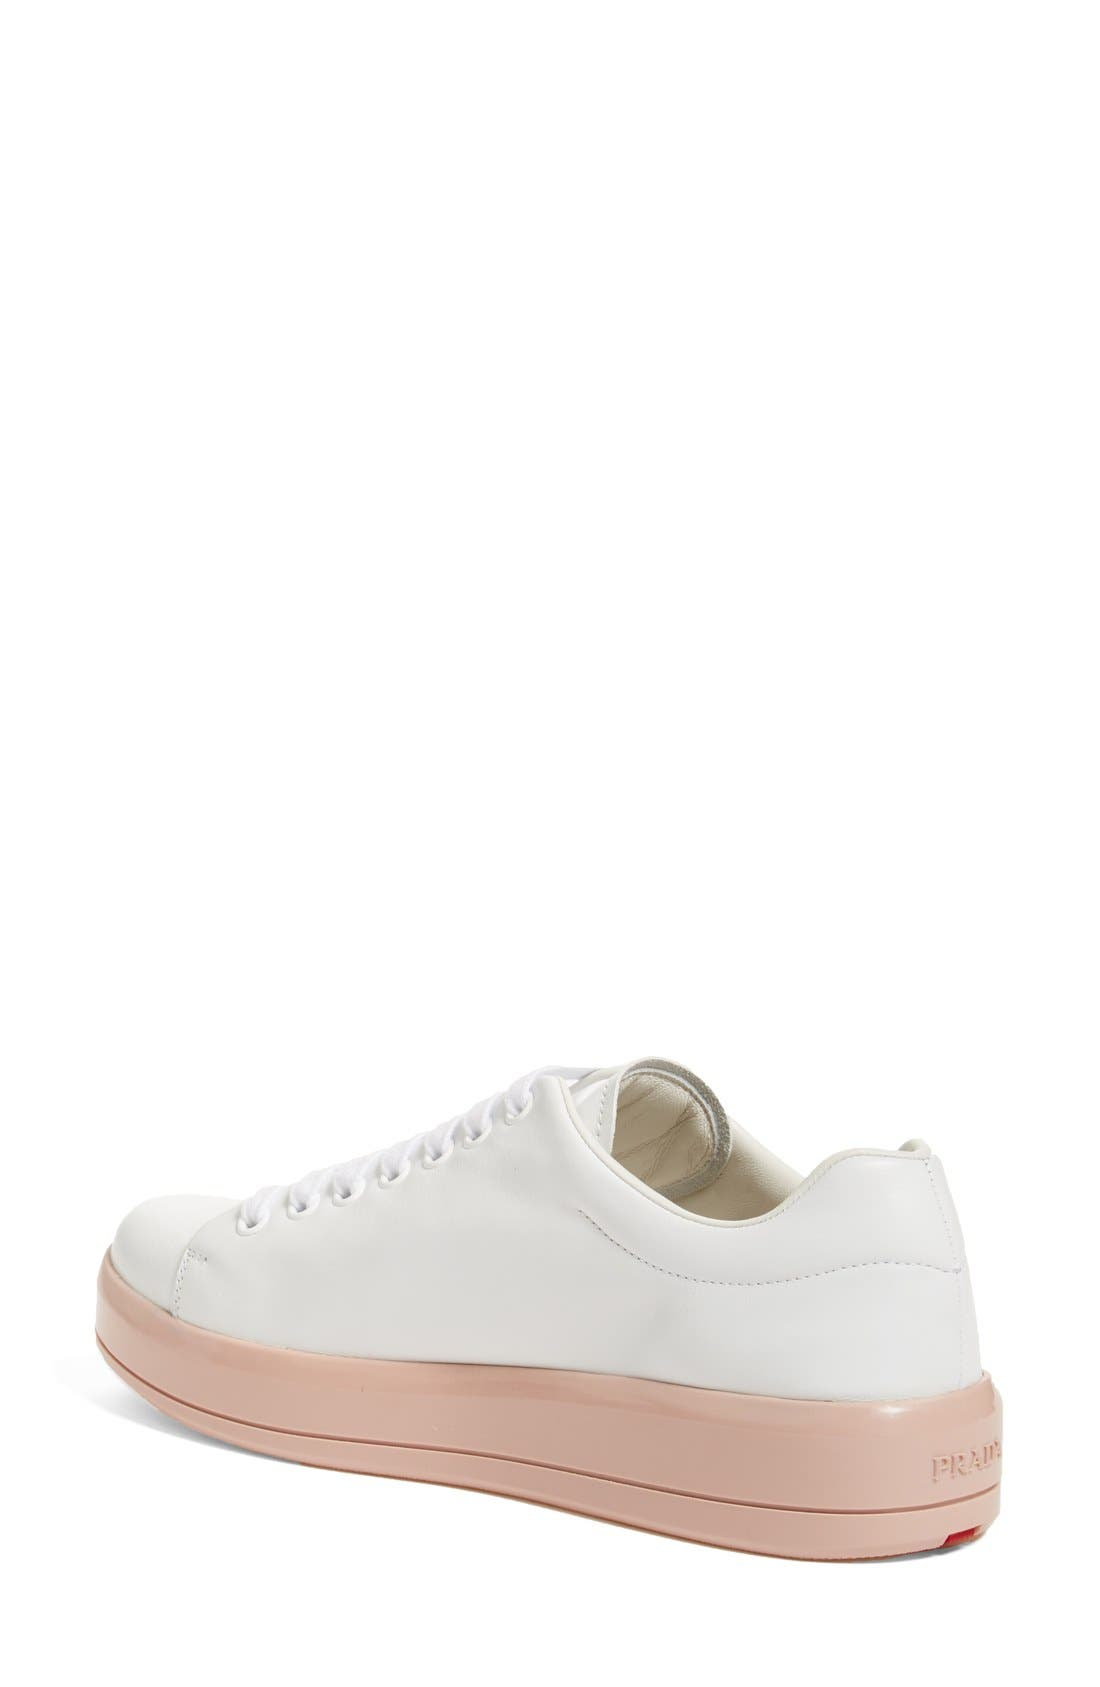 Alternate Image 2  - Prada Platform Lace-Up Sneaker (Women)